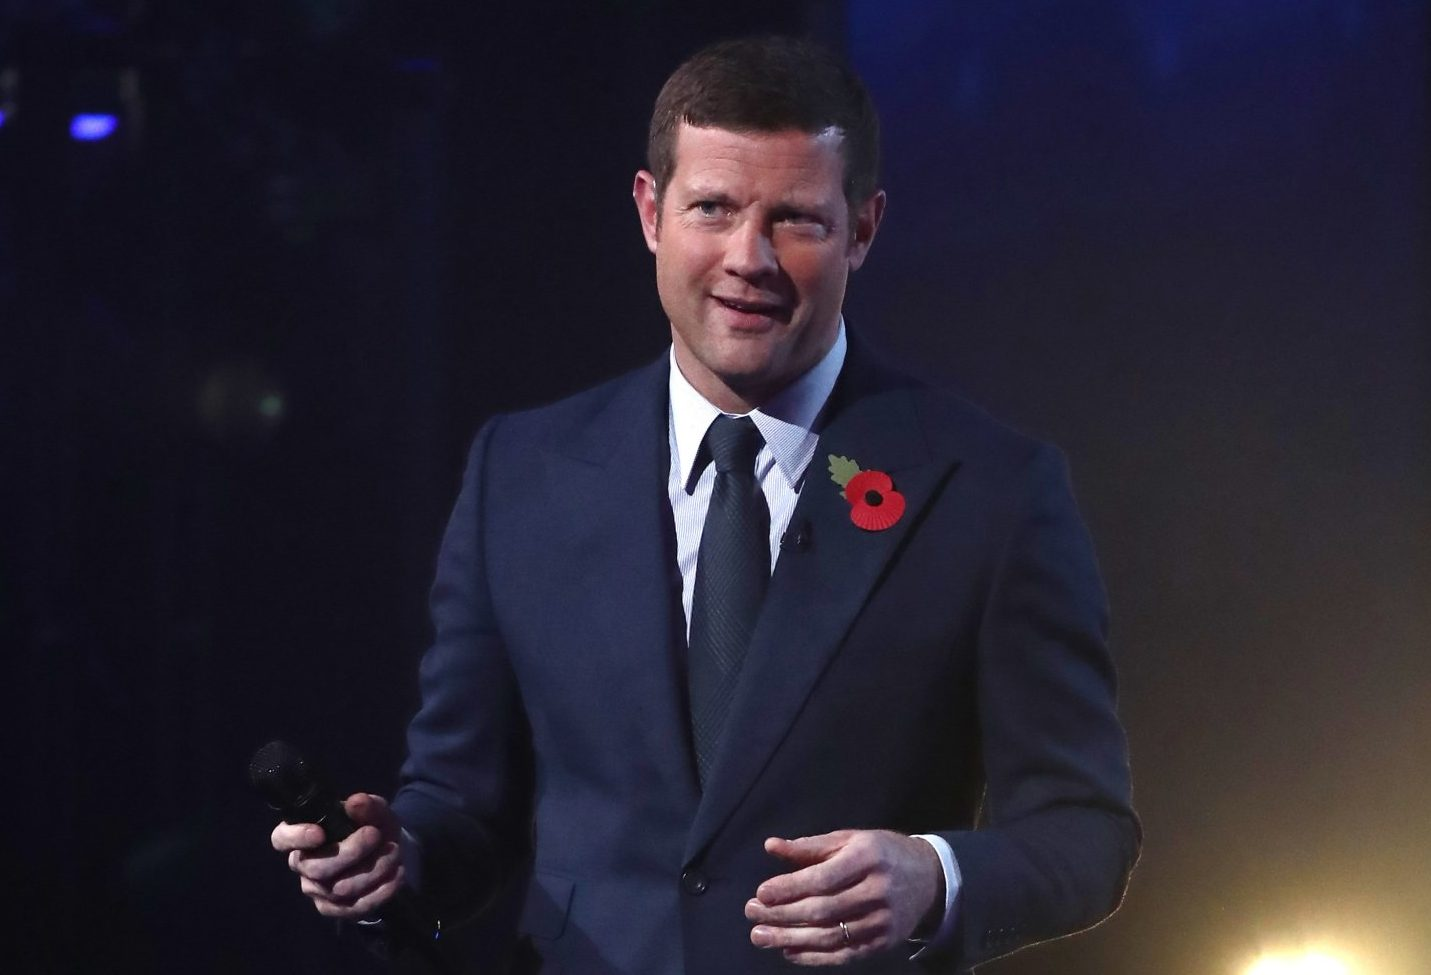 EDITORIAL USE ONLY - NO BOOK PUBLISHING Mandatory Credit: Photo by Dymond/Thames/Syco/REX (9972280ck) Dermot O'Leary 'The X Factor' TV show, Series 15, Episode 21, London, UK - 10 Nov 2018